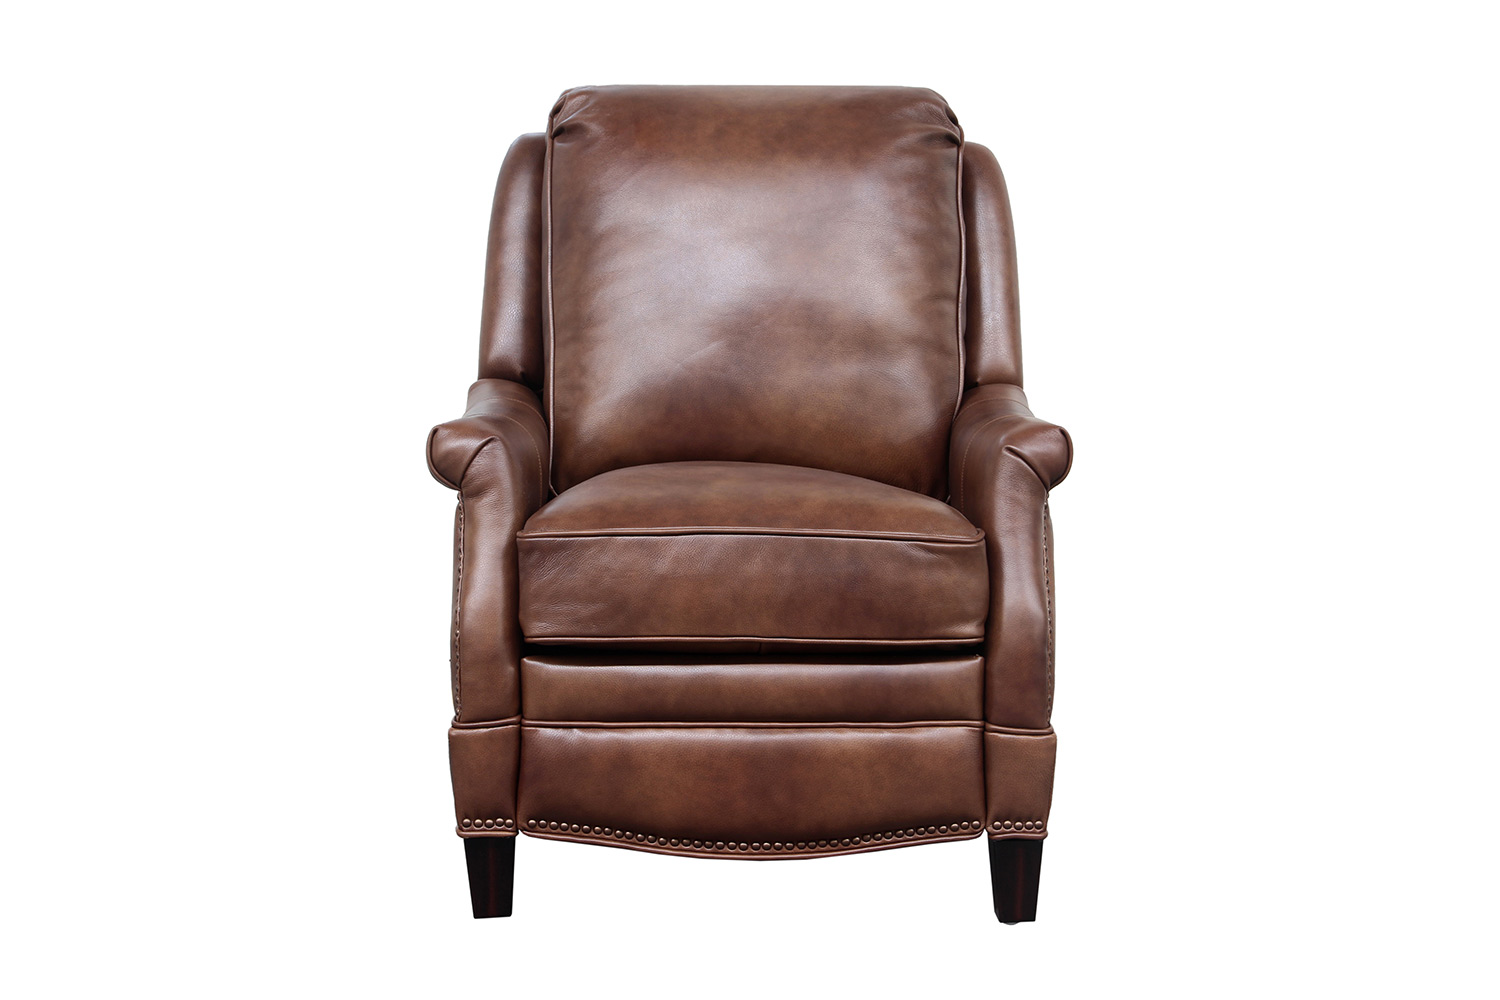 Barcalounger Ashebrooke Recliner Chair Wenlock Tawny All